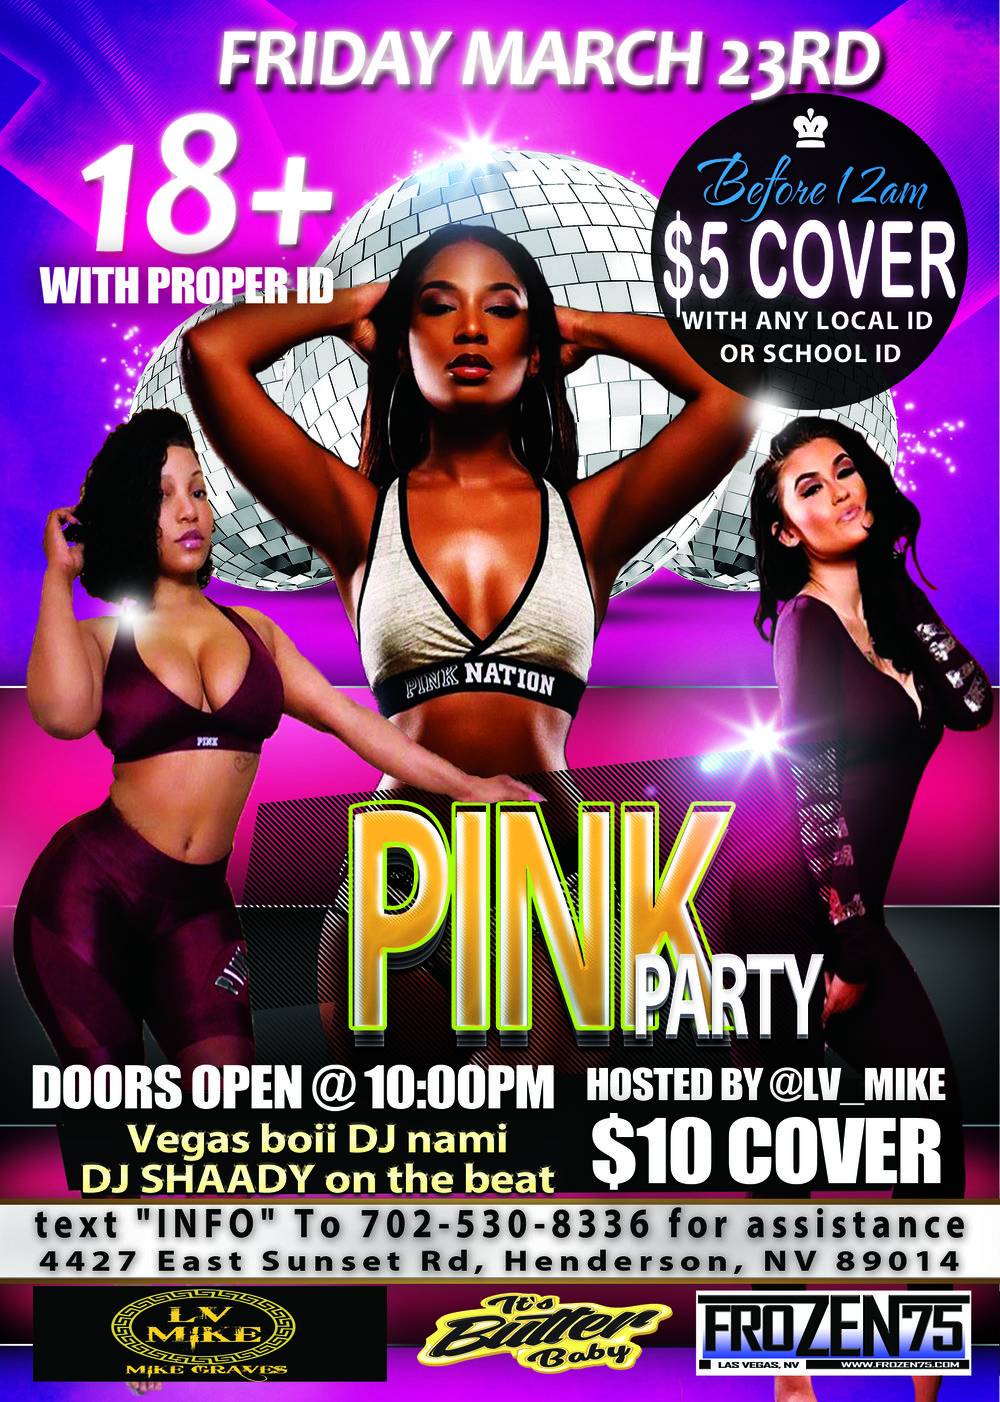 FroZEN75_3-23-2018__18+Pink Party hosted by Mike LV1.jpg